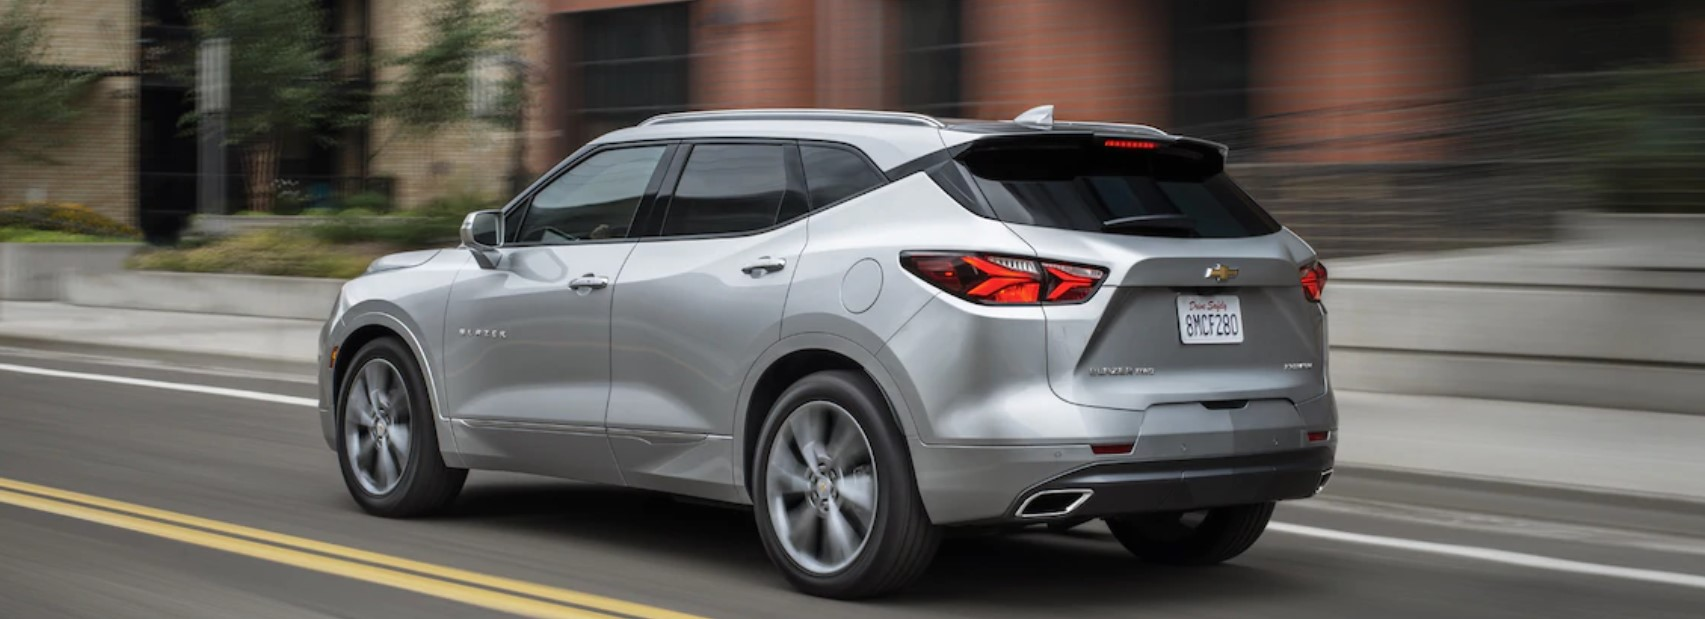 2019 Chevrolet Blazer Rear White Exterior